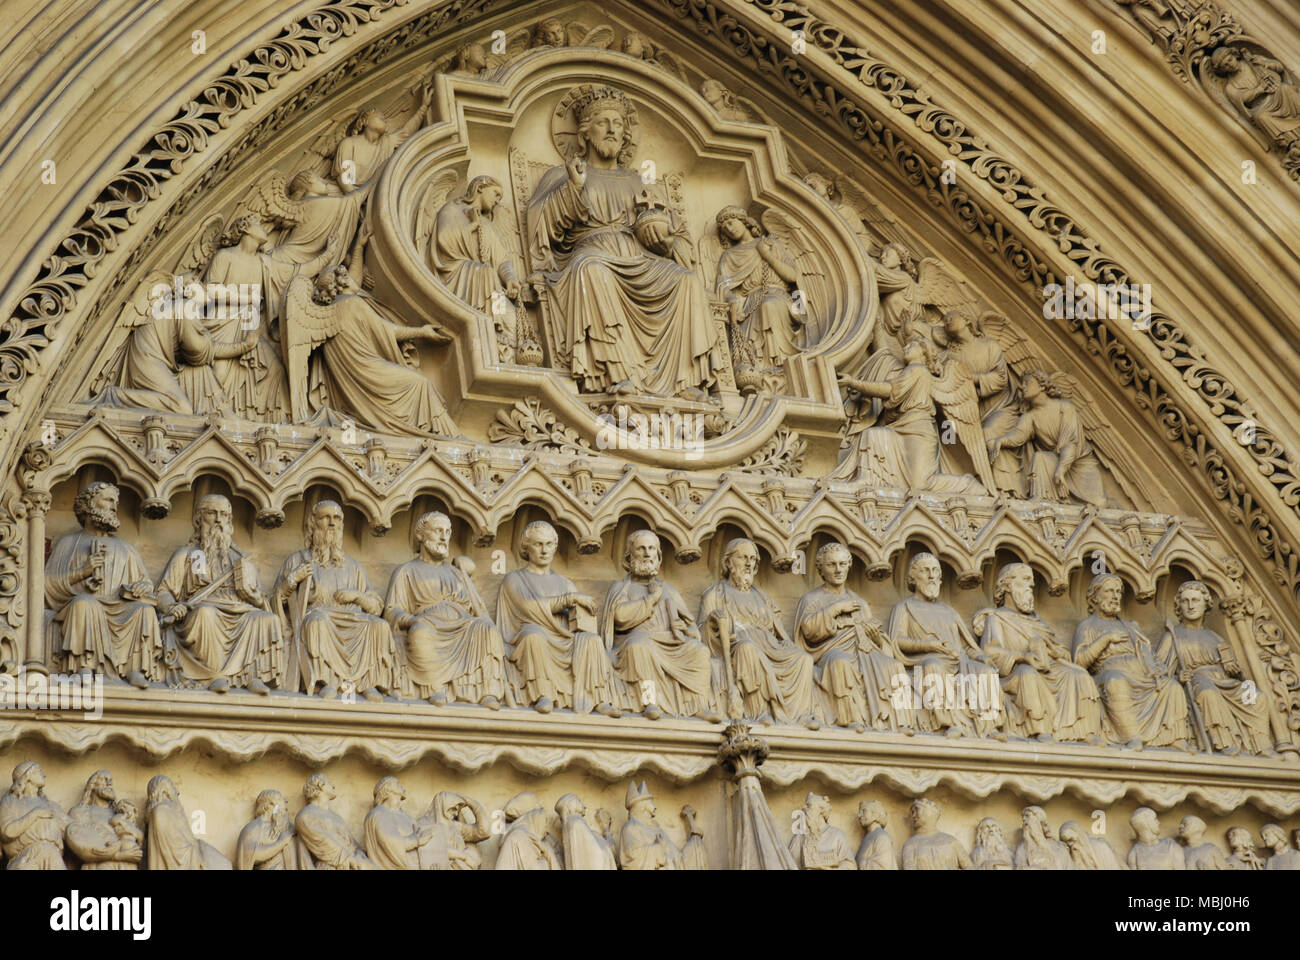 Tympanum facade above the North/Main Entrance of Westminster Abbey Stock Photo